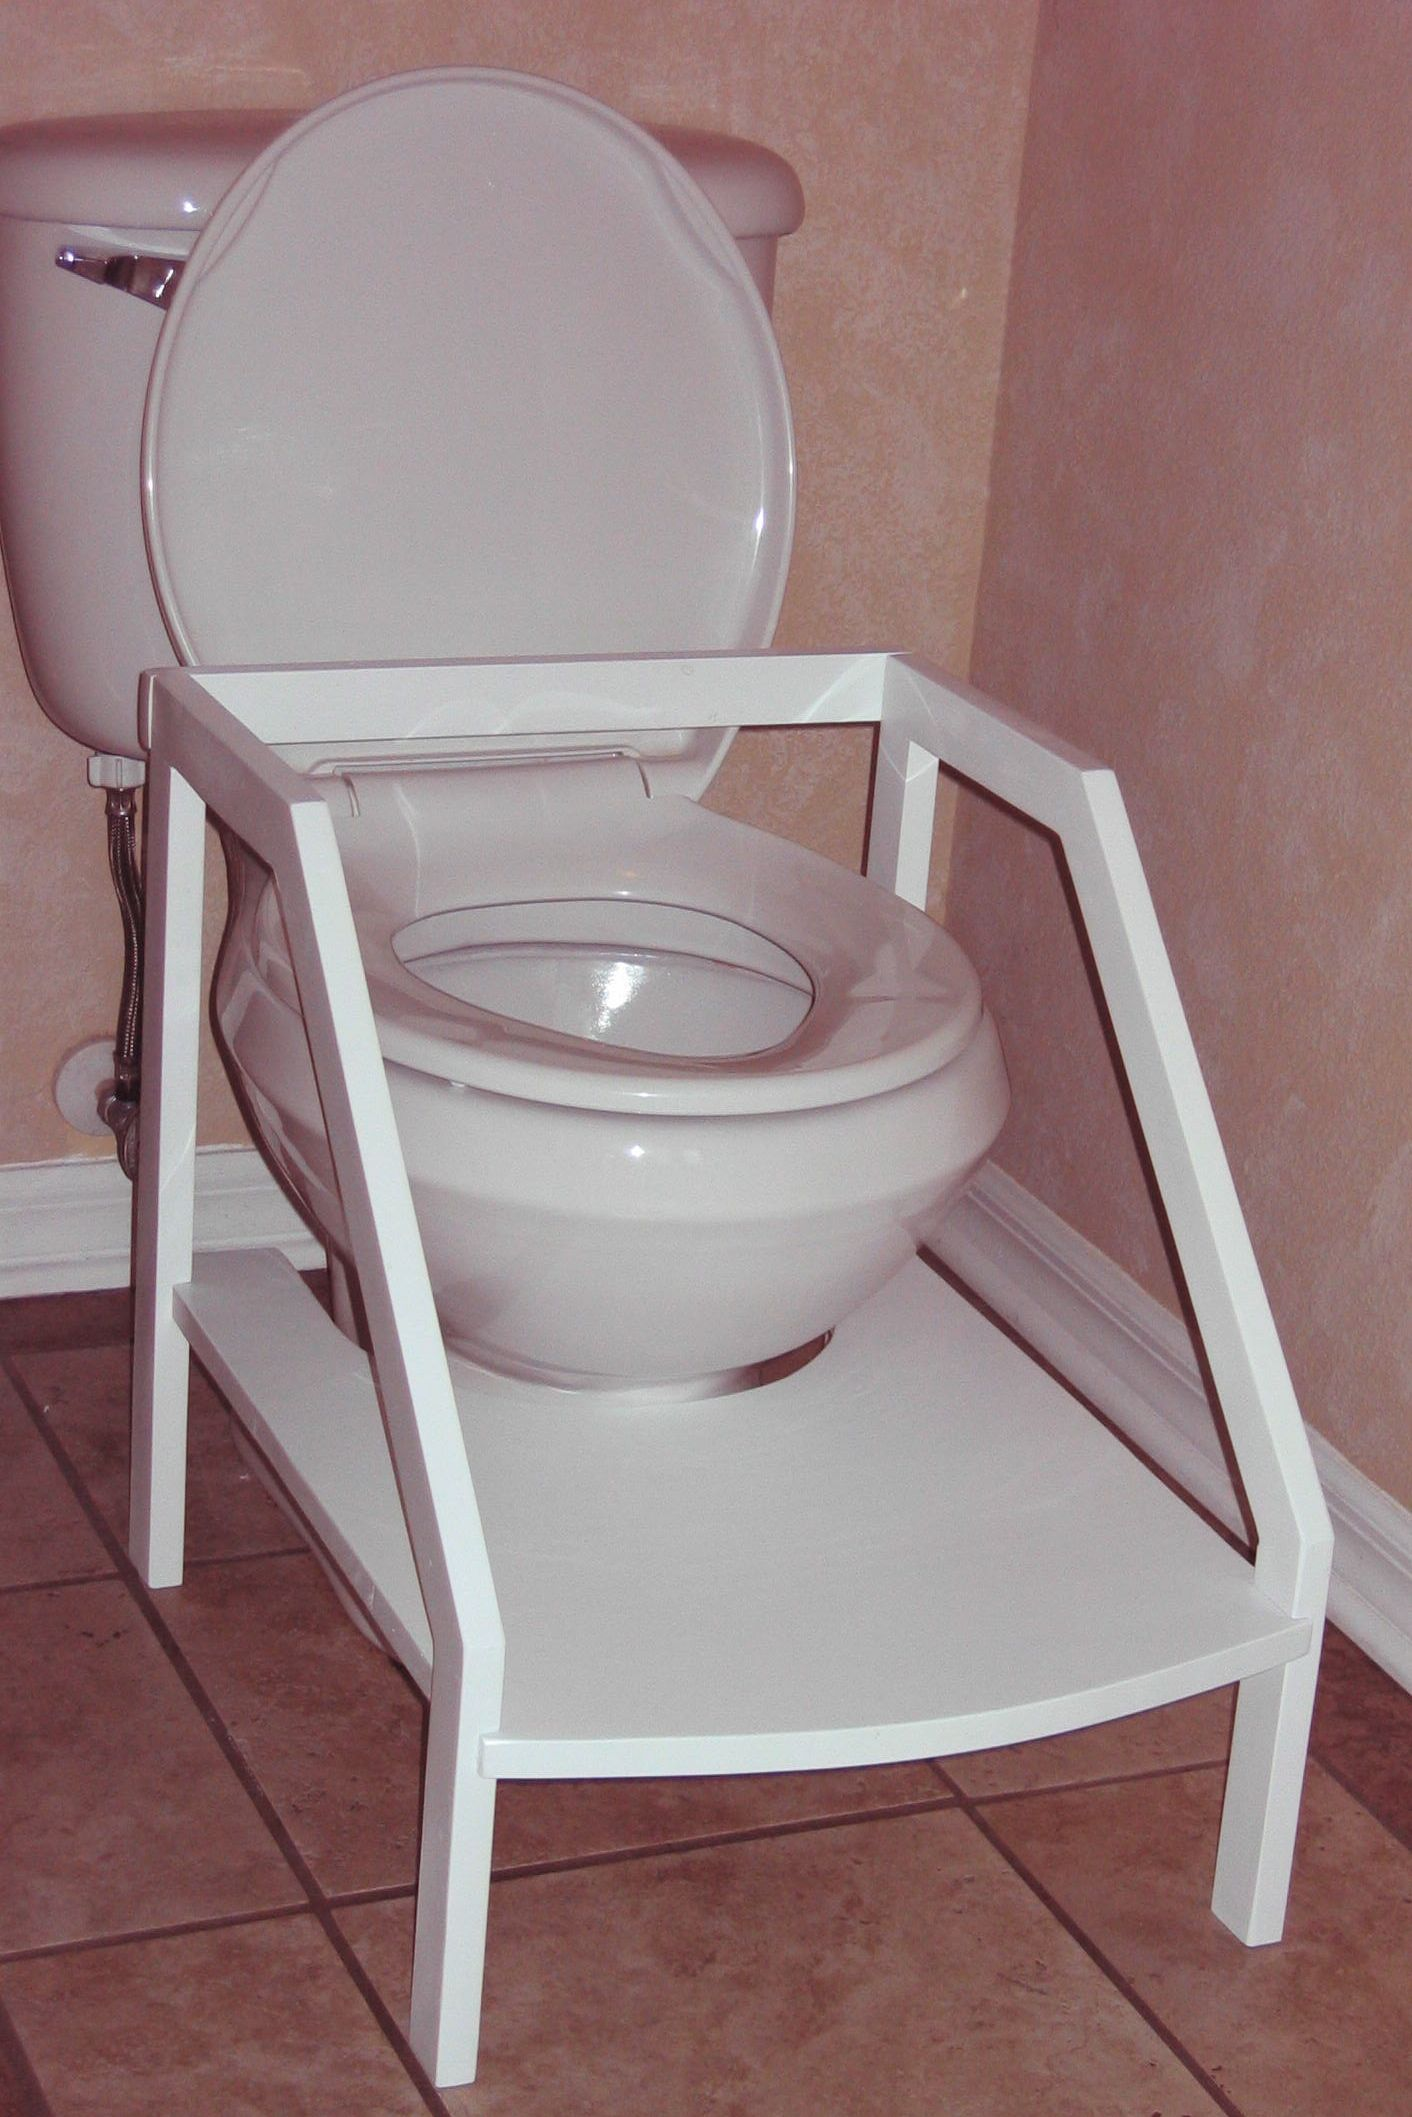 Perfect Potty Stool This Would Also Work For Potty